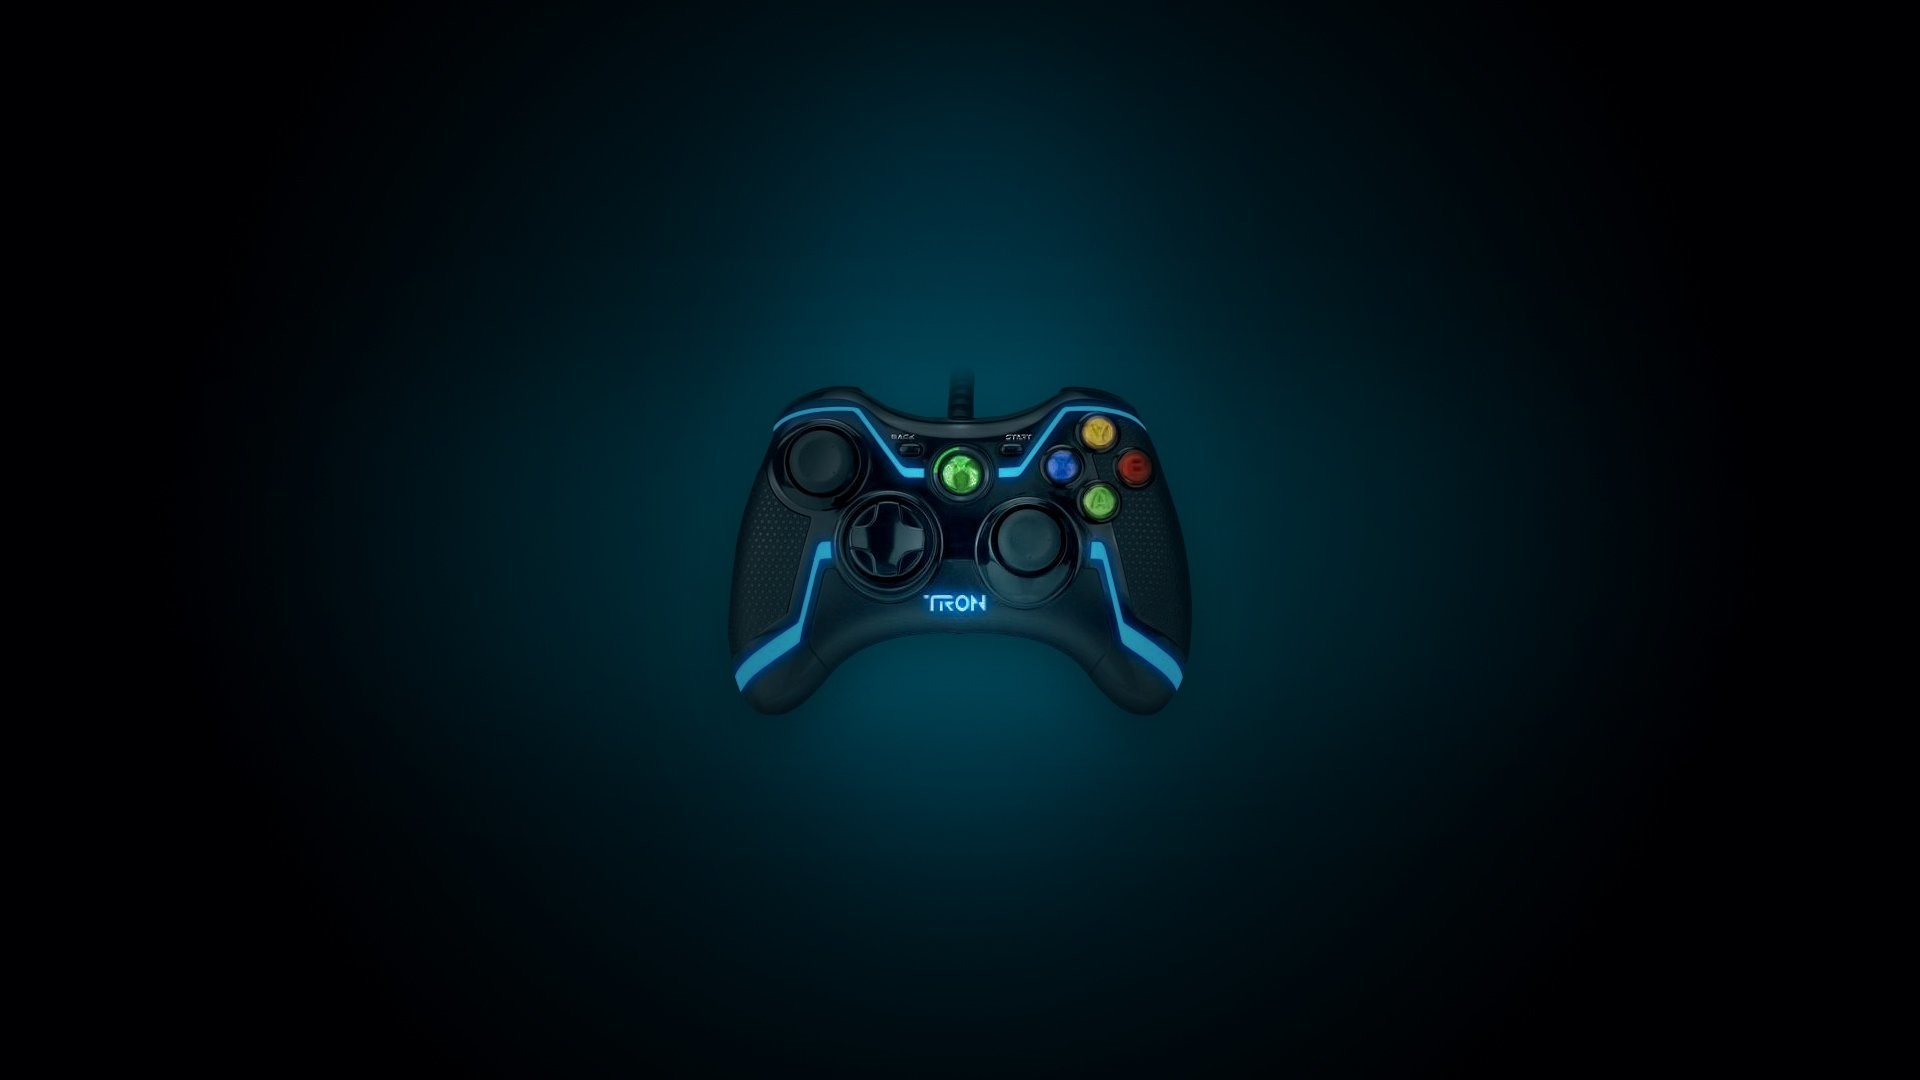 Cool gaming backgrounds 1920x1080